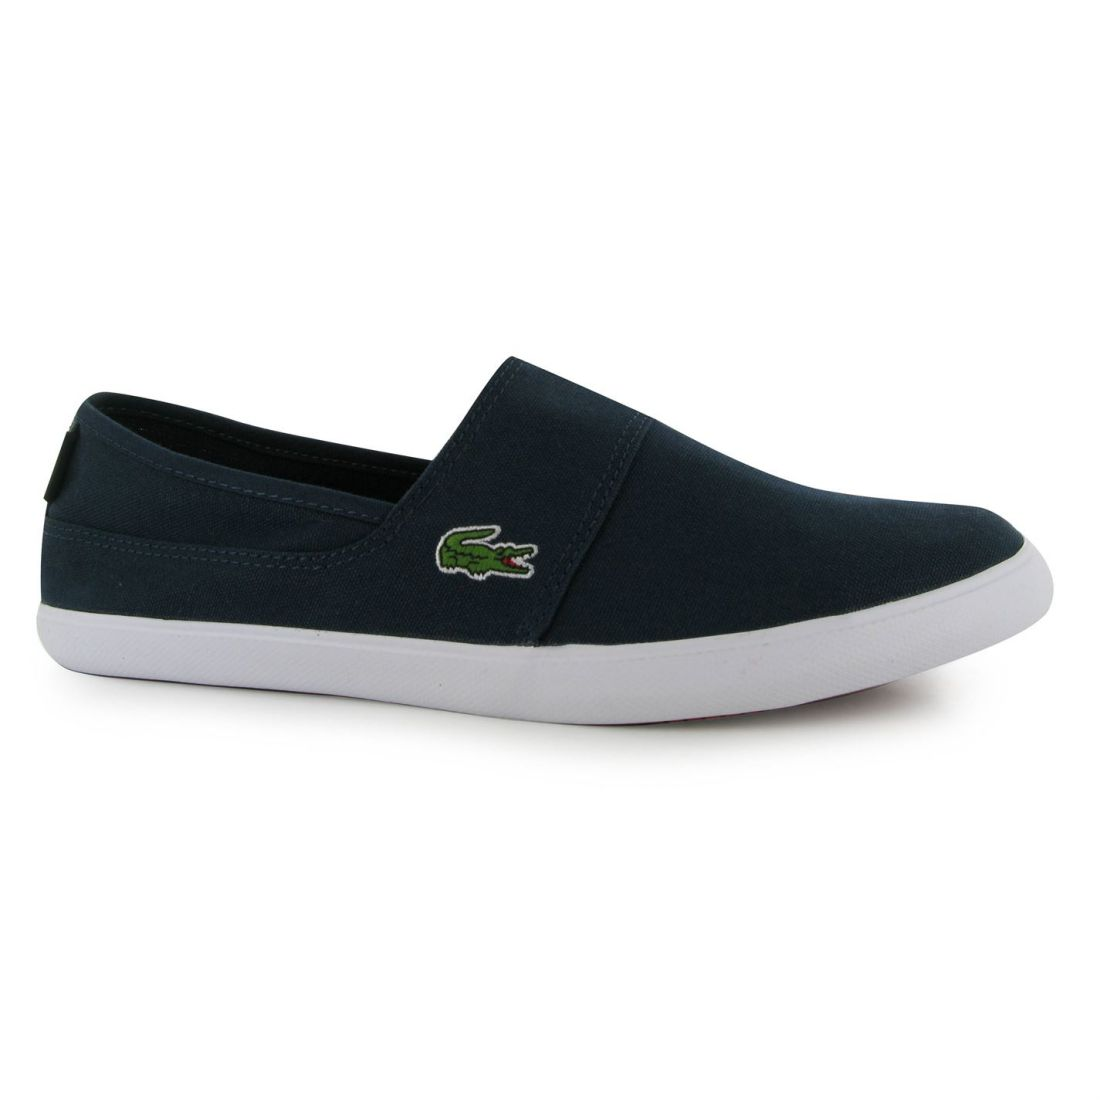 146fabebb Lacoste Marice Casual Shoes Mens Navy UK 10 (44.5) for sale online ...